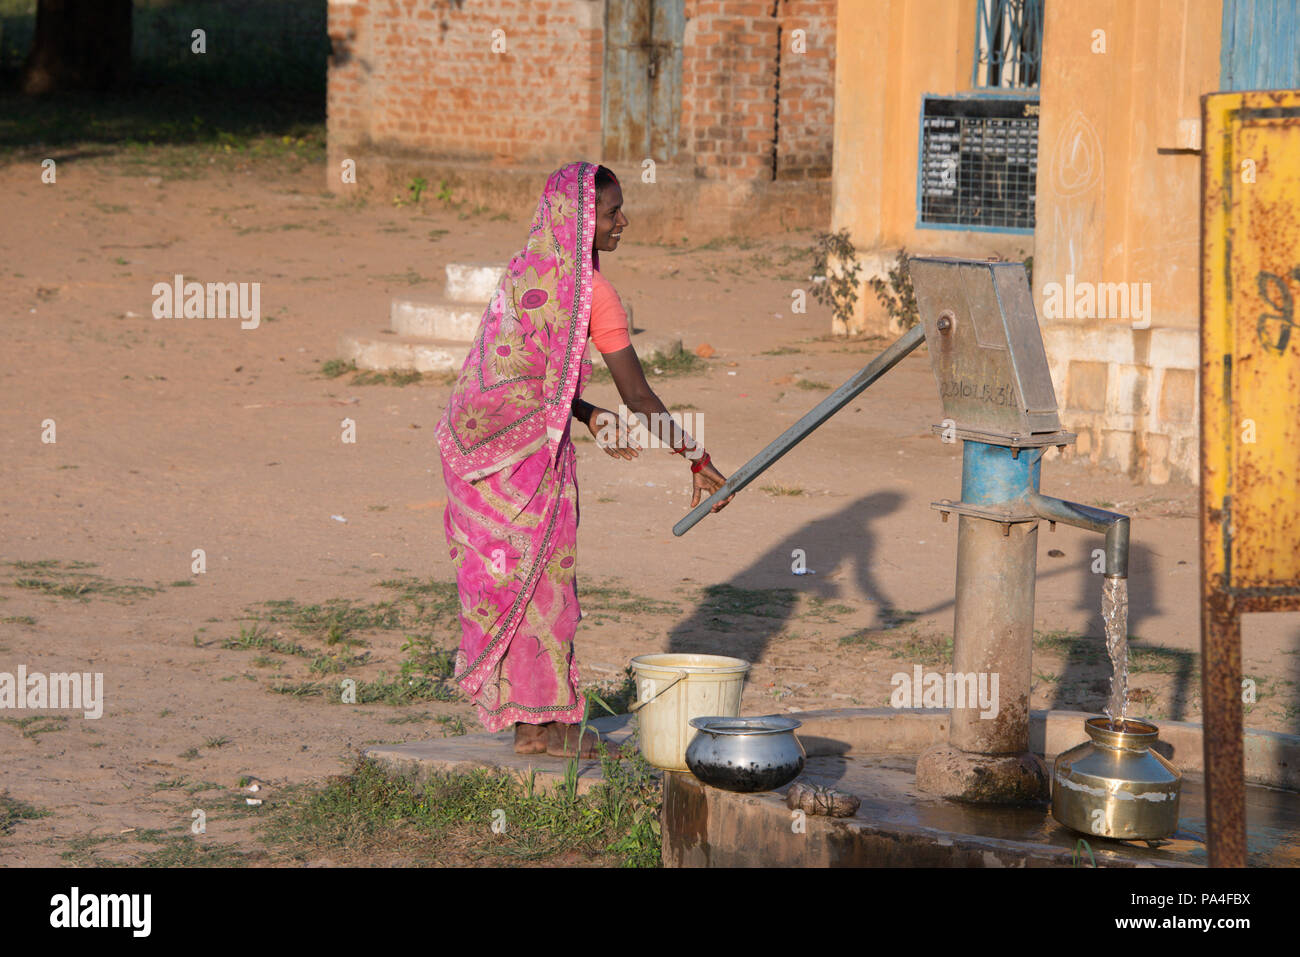 Indian woman pumps water from a well in the local village in Kanha near the Kanha National Park, in India - Stock Image